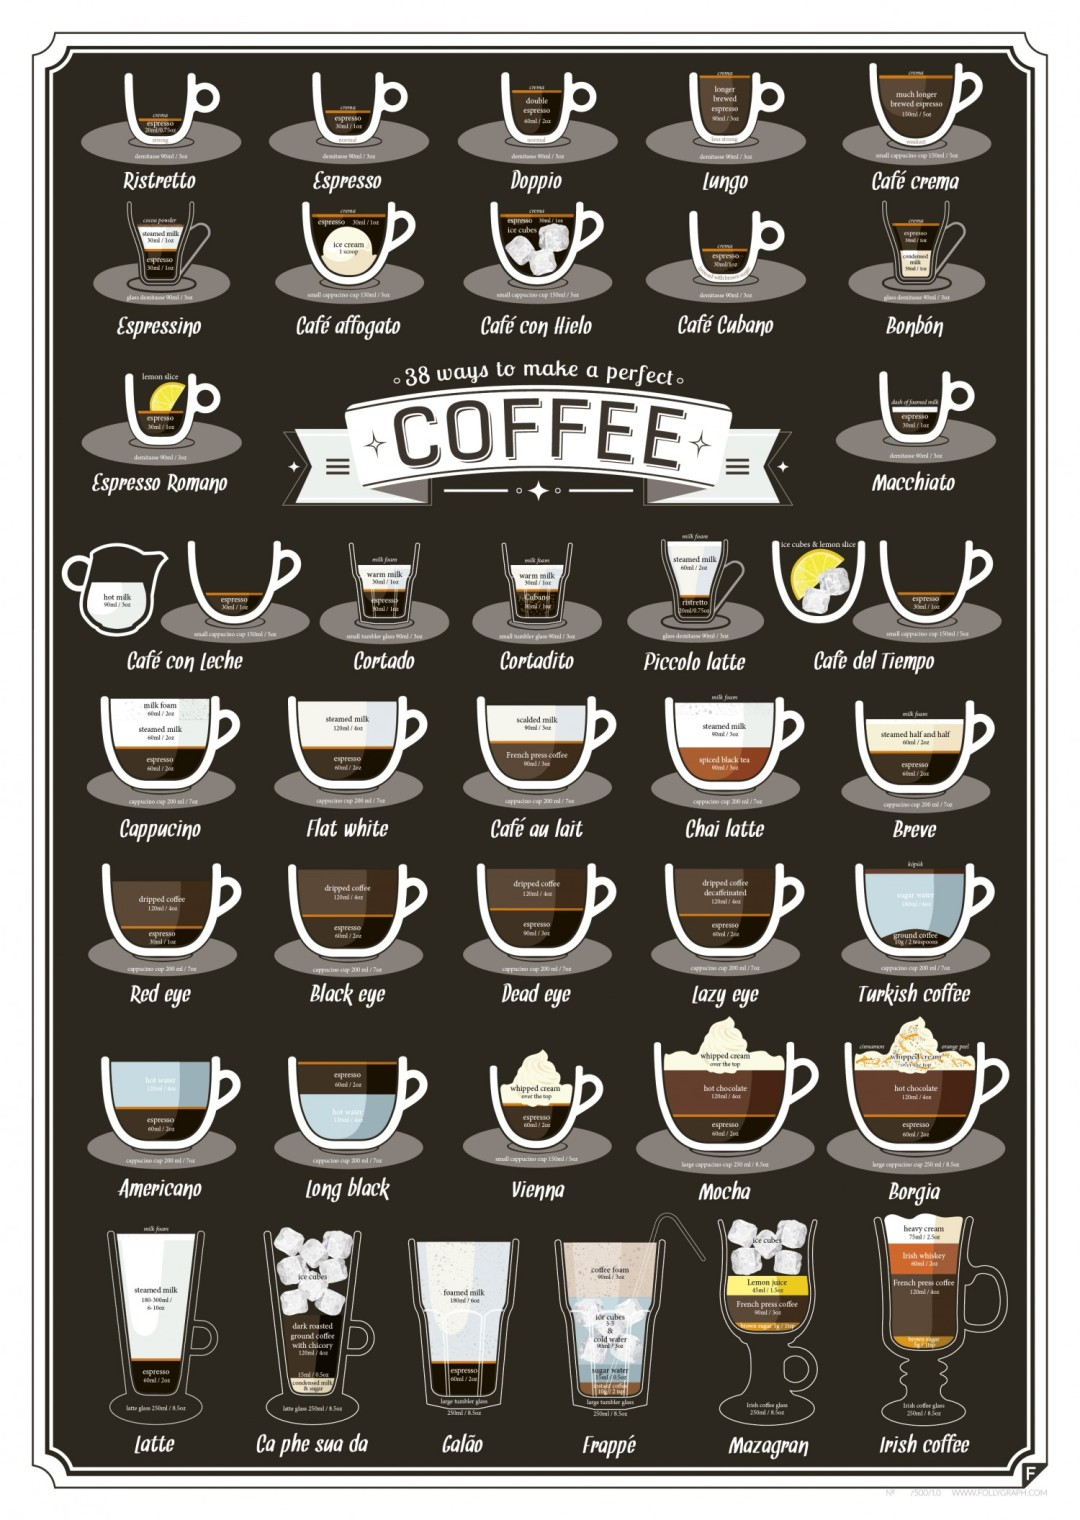 38-ways-to-make-a-perfect-coffee_53f5ef2b62be0_w1500.jpg